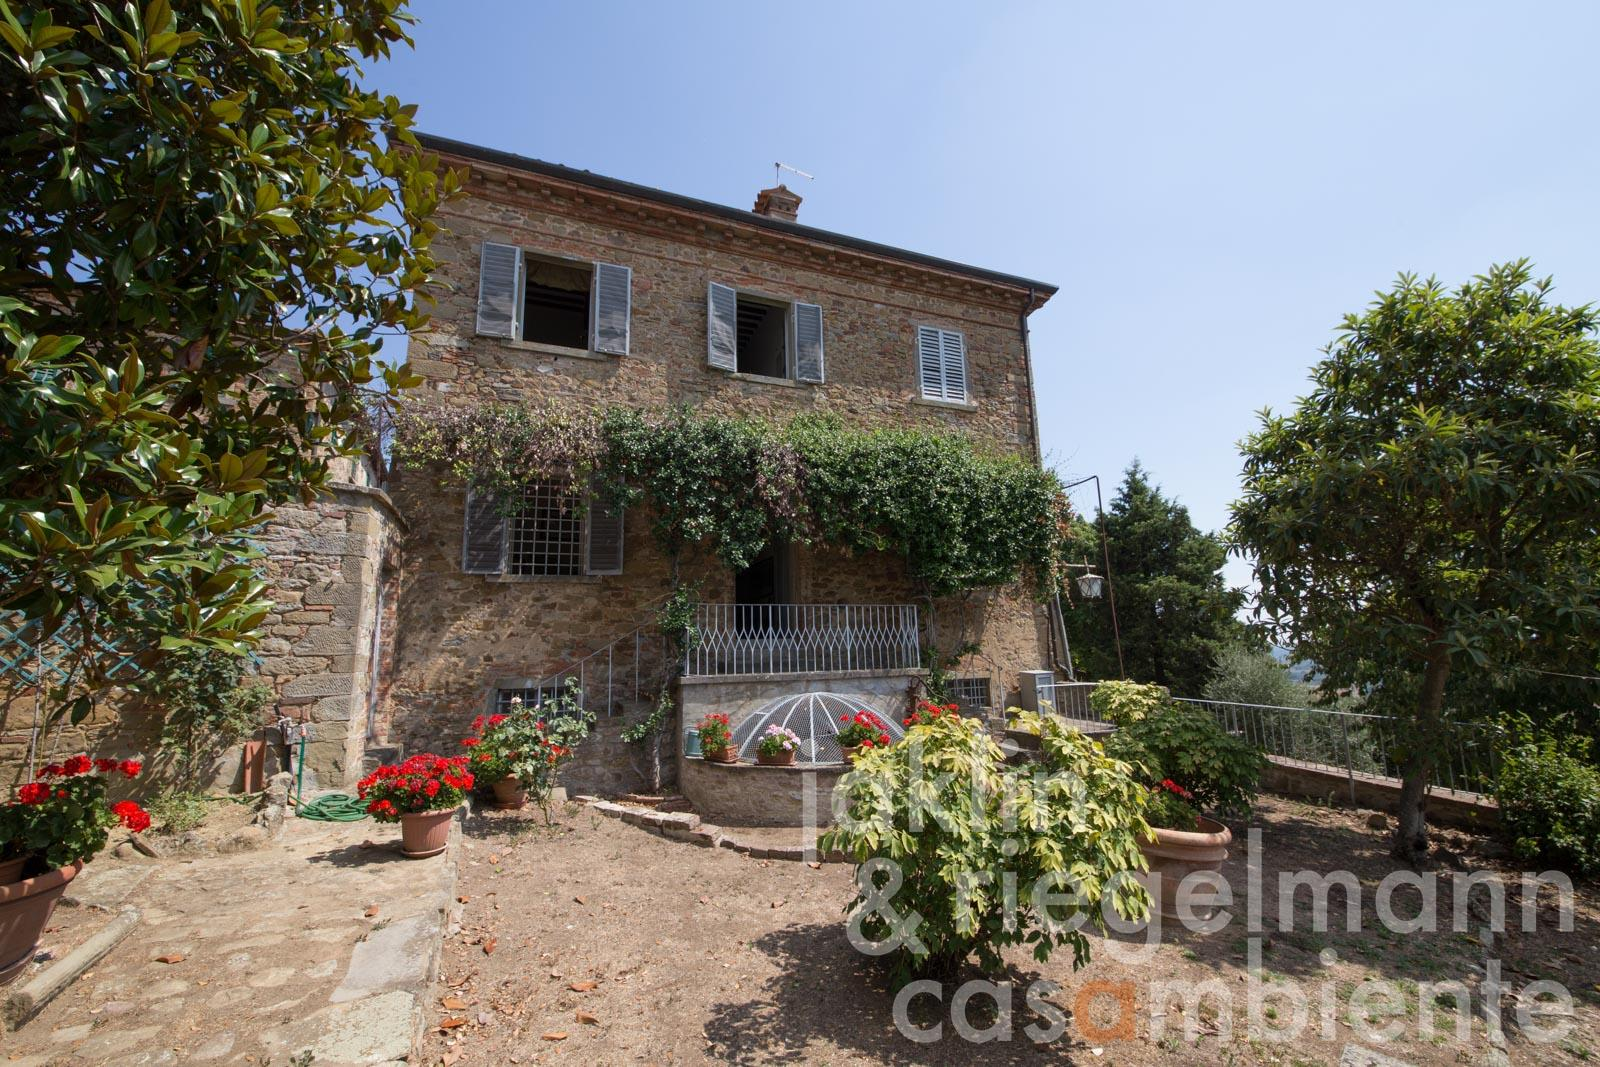 Manorial old villa for sale with restored small church and garden in Tuscany